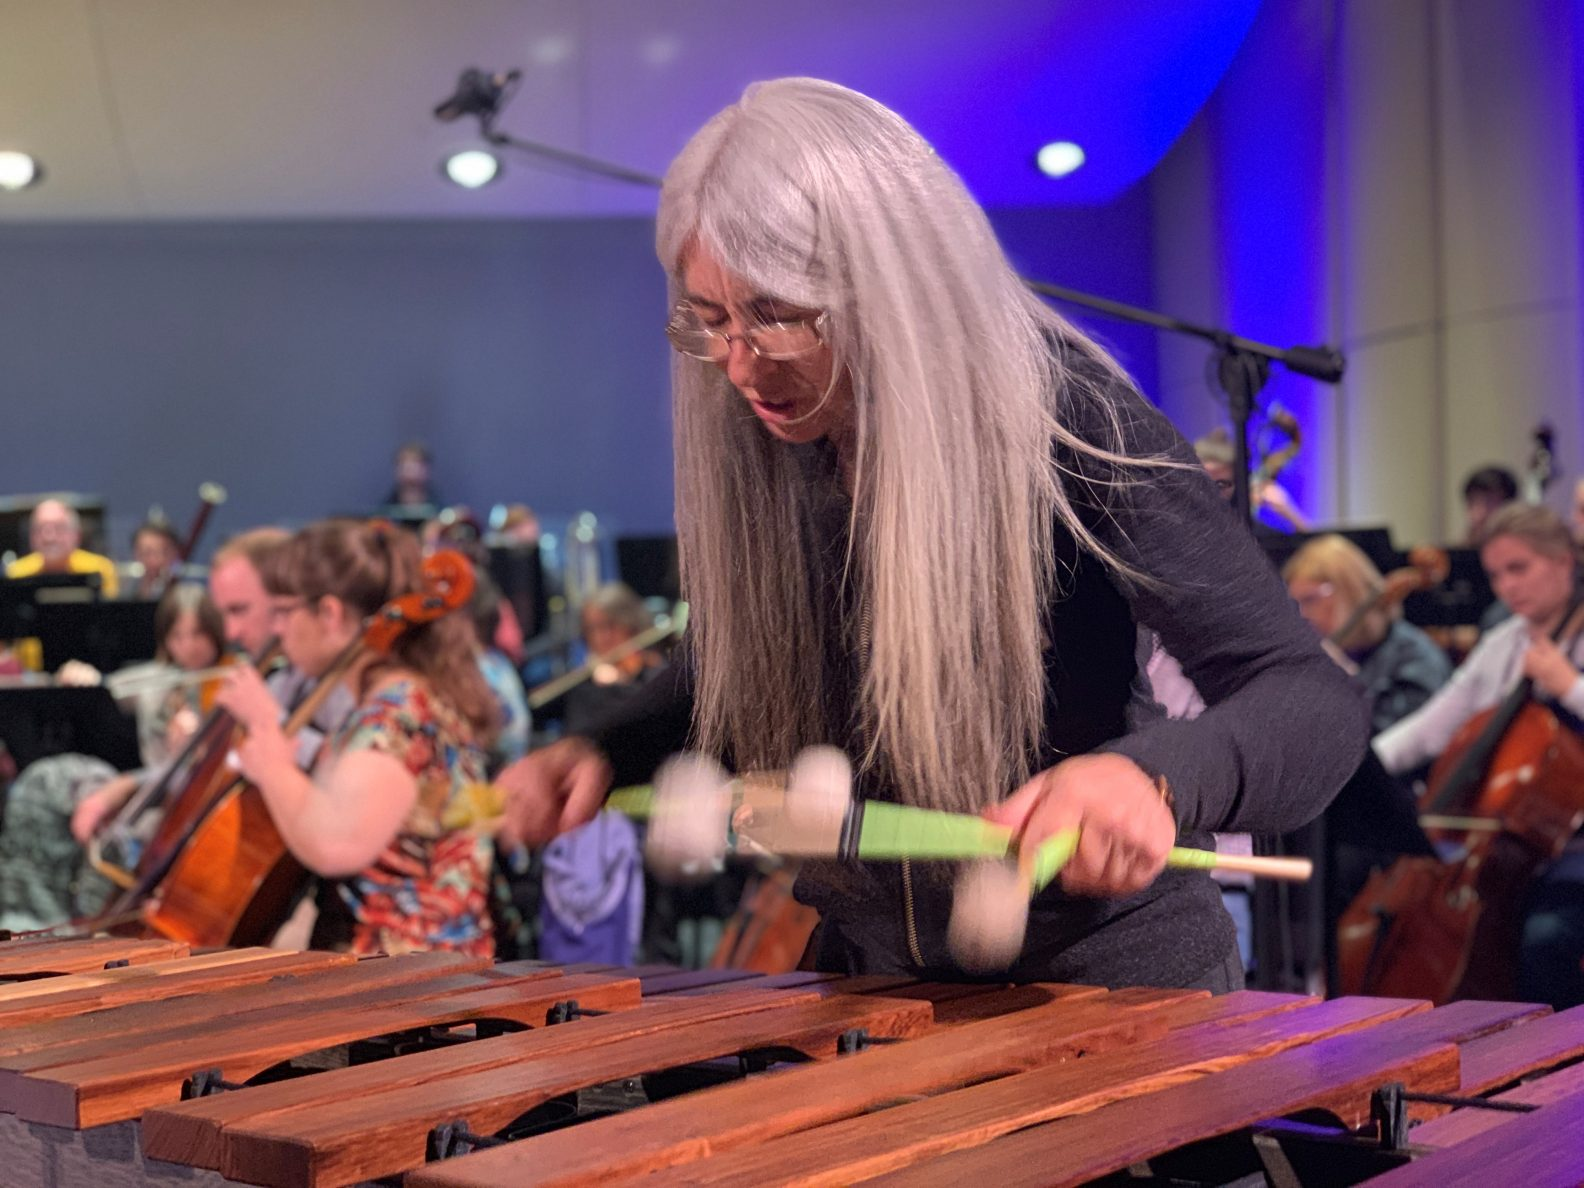 Evelyn Glennie playing the marimba with two mallets